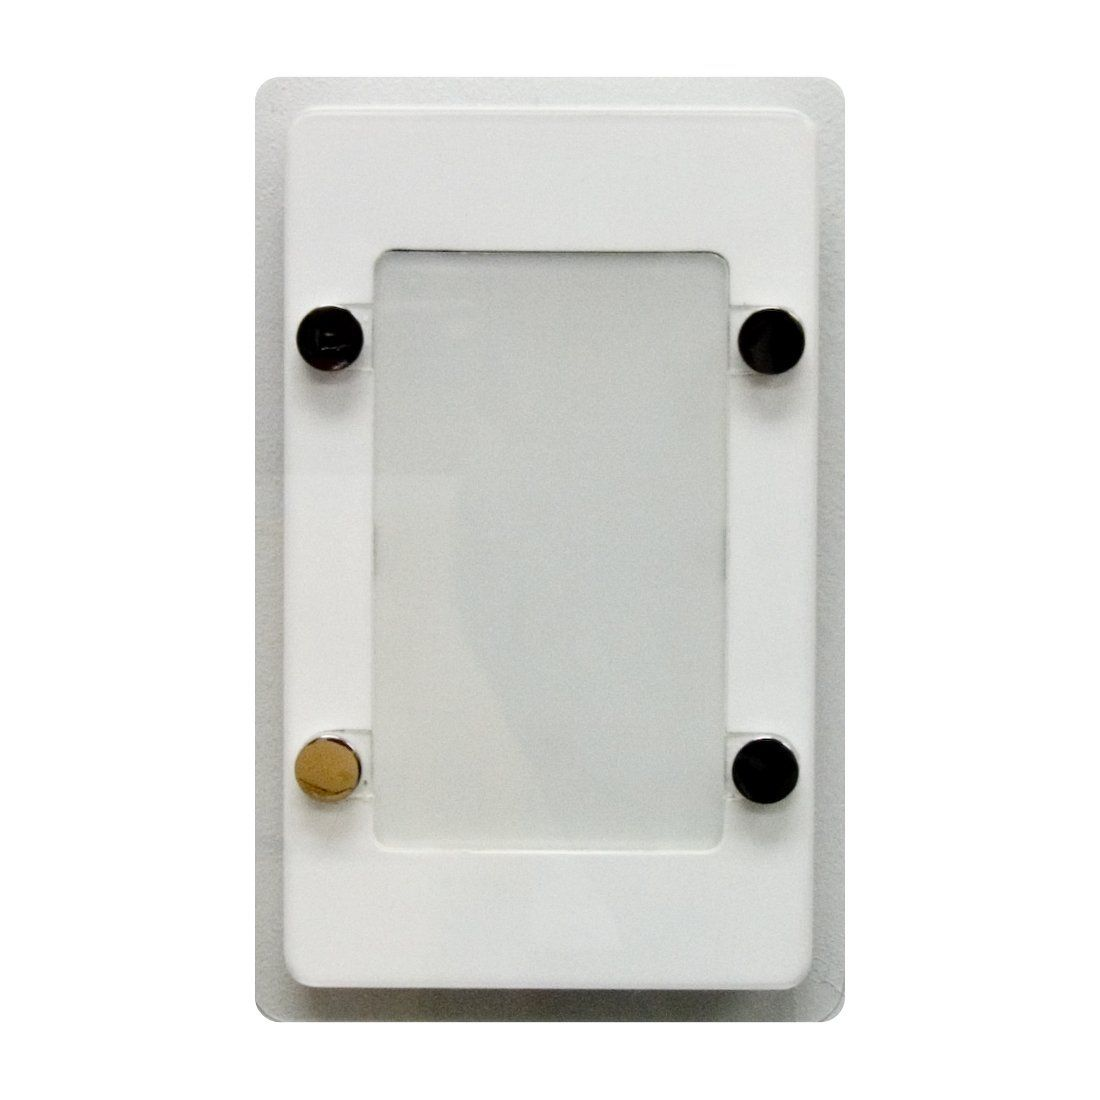 Jasco Products 1129 Led Flat Panel Automatic Night Light For The